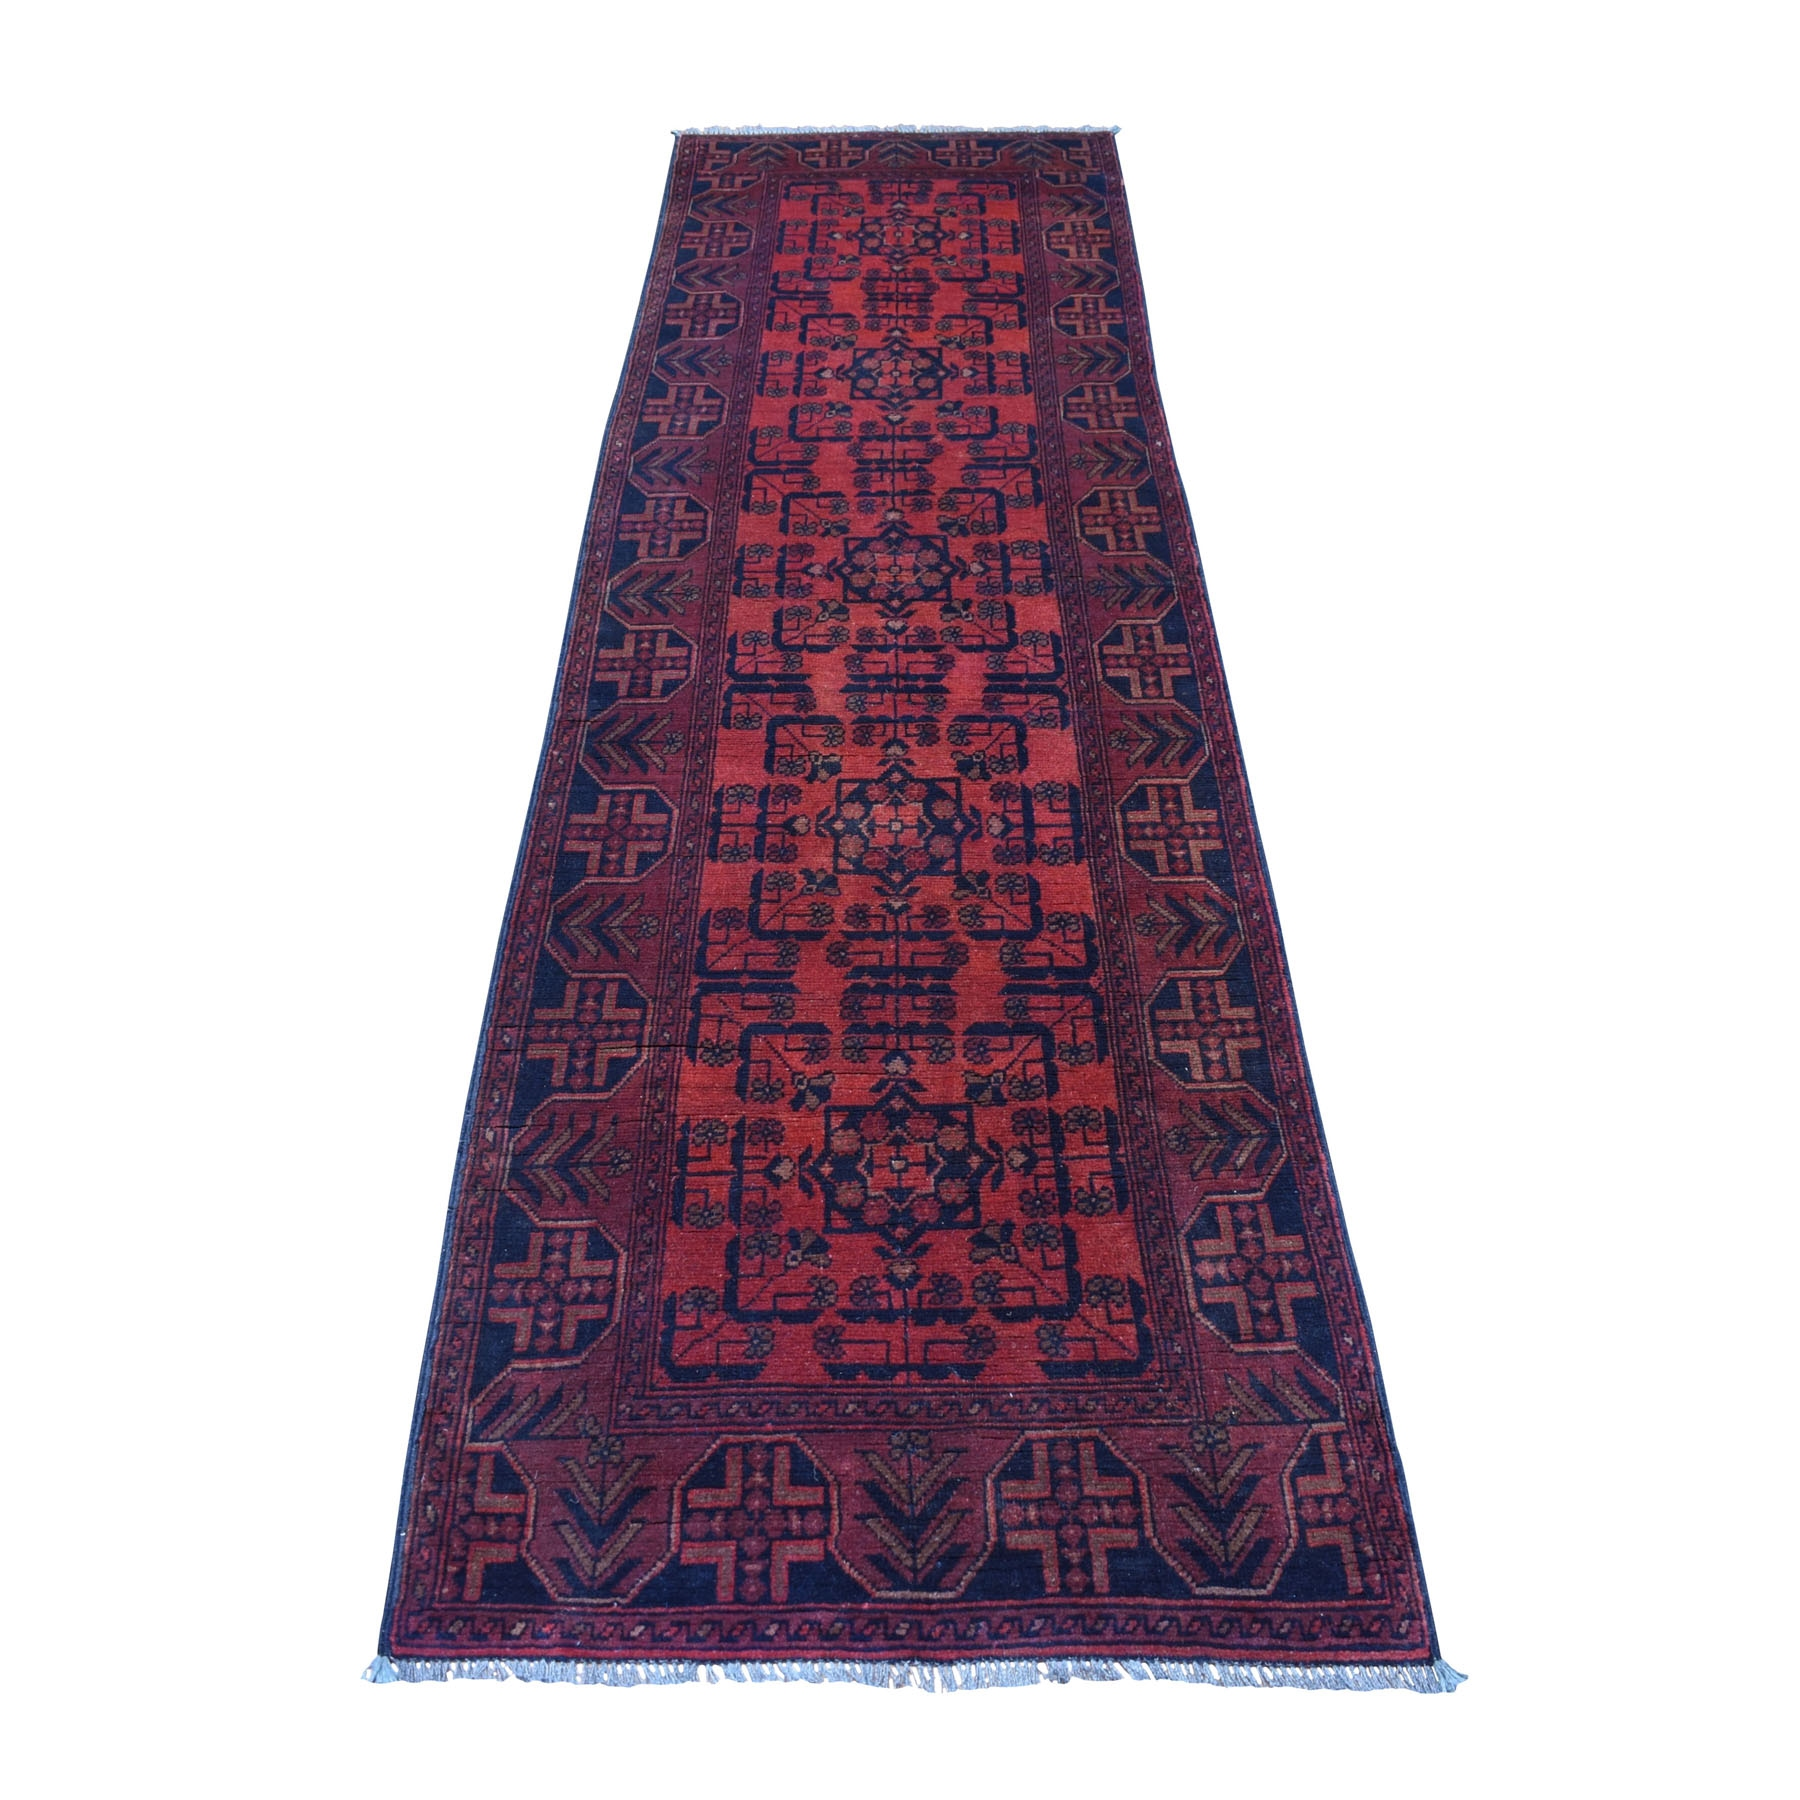 "2'7""x9' Deep and Saturated Red Geometric Afghan Andkhoy Runner Pure Wool Hand Woven Oriental Rug"